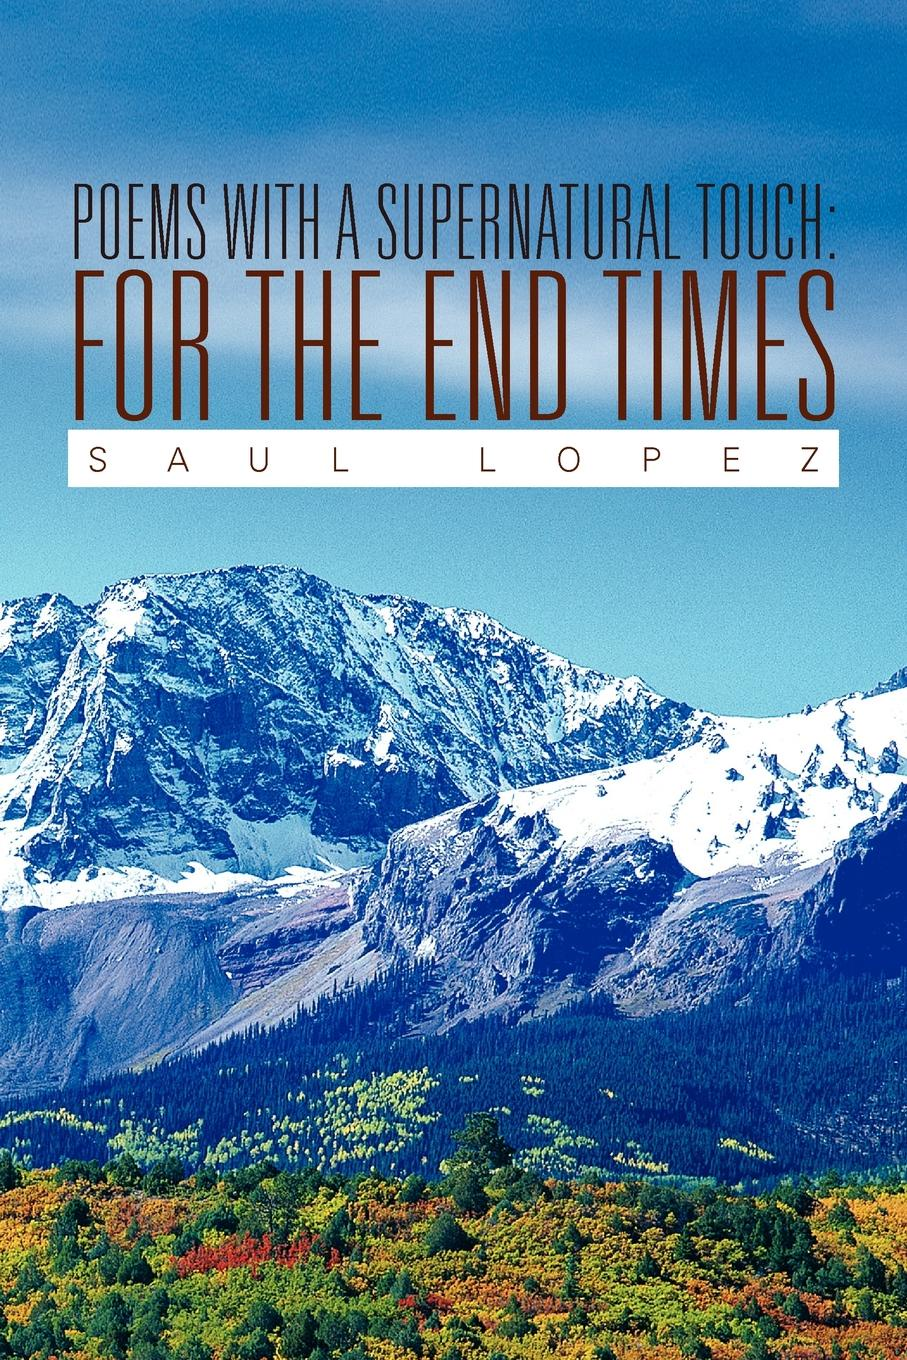 Saul Lopez Poems with a Supernatural Touch. For the End Times the end times